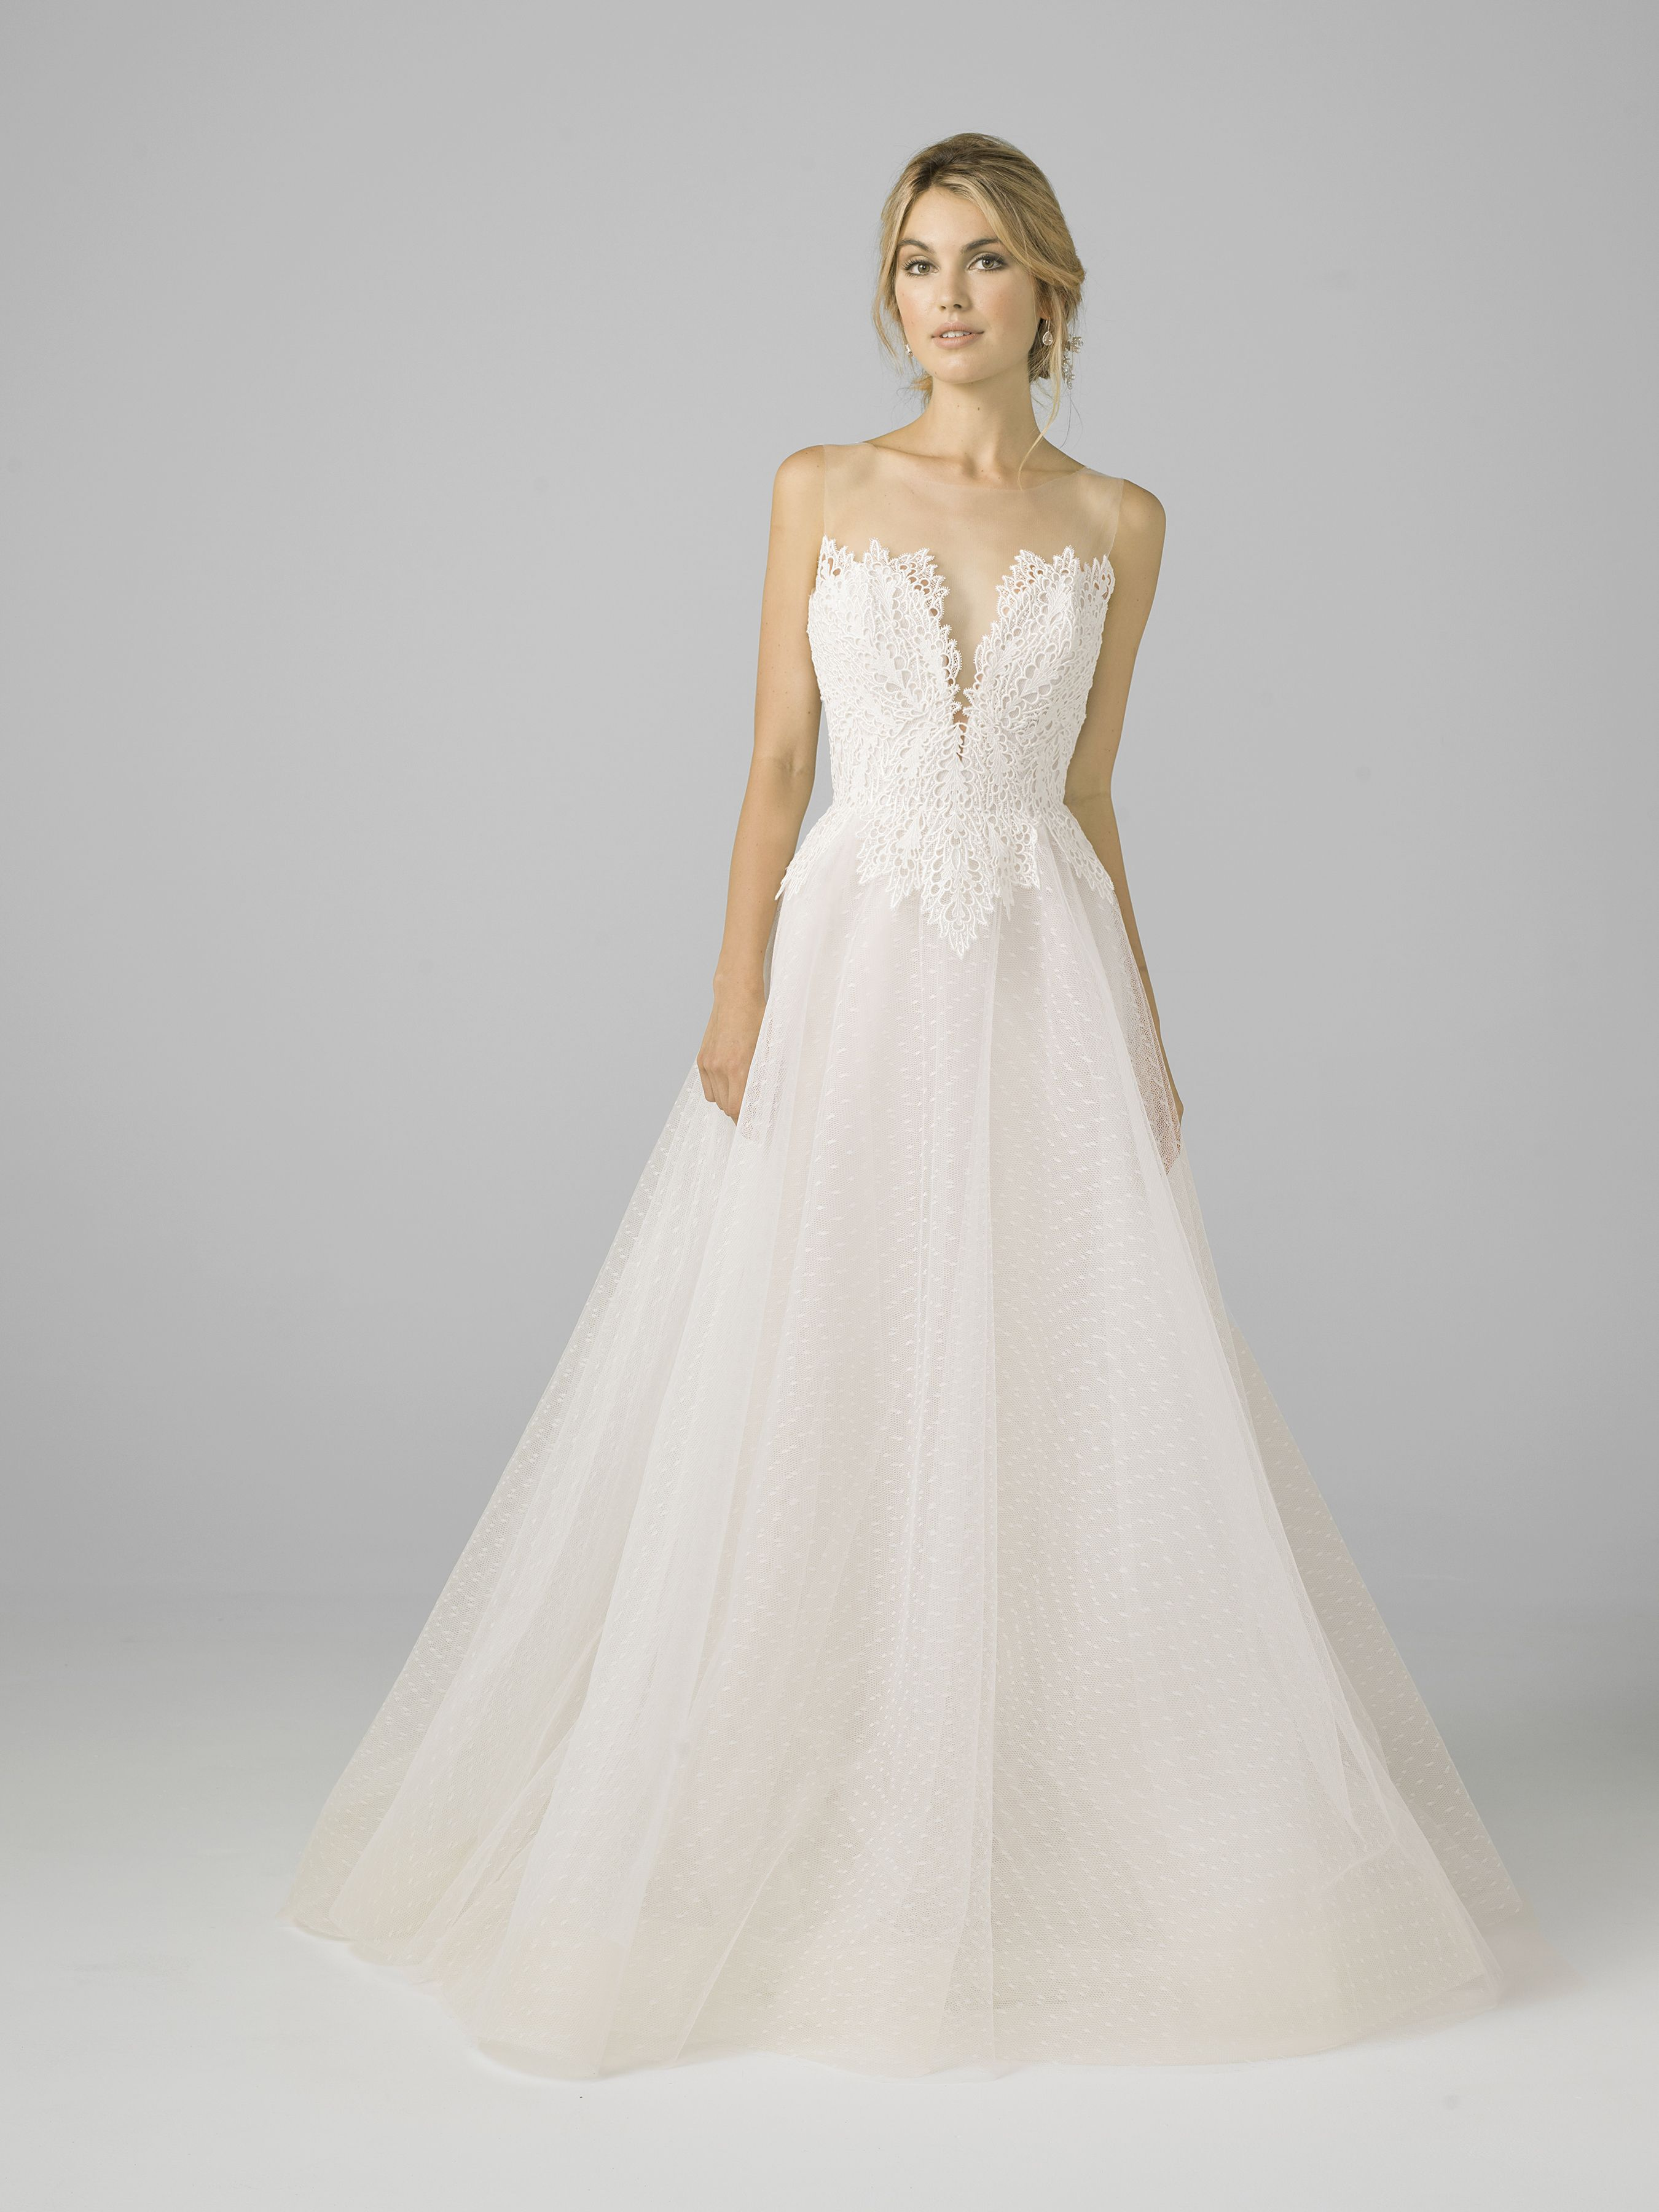 Point duesprit tulle ball gown willusion neckline u venise lace v